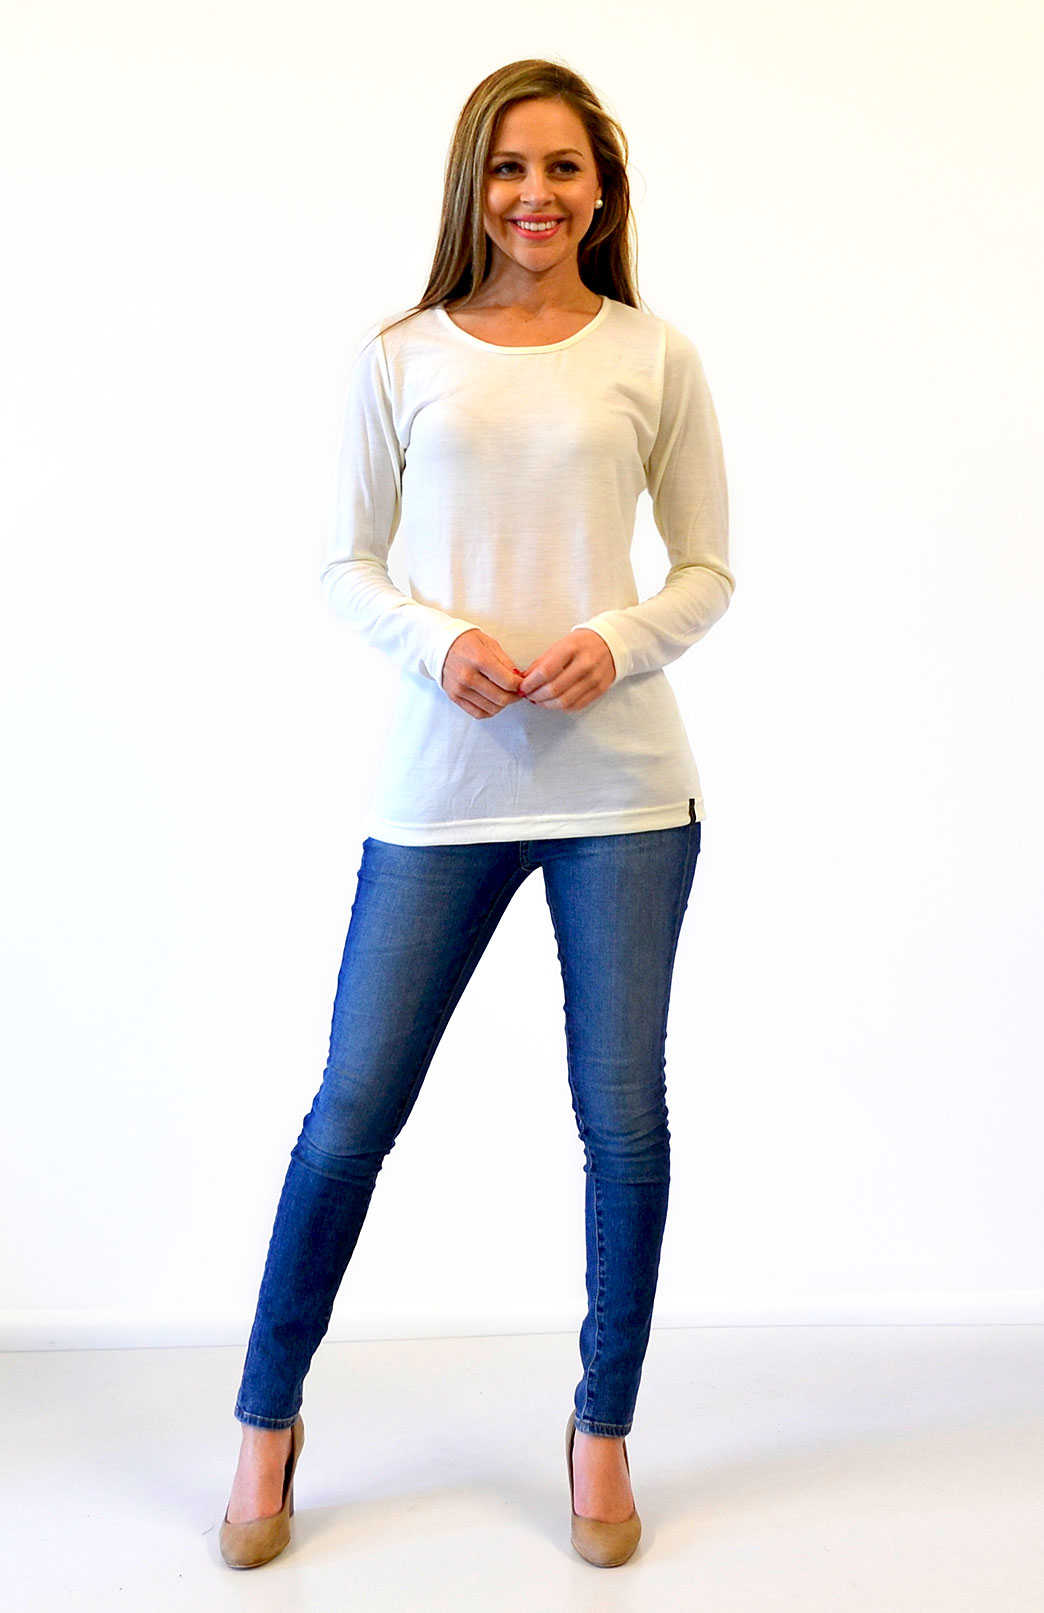 Round Neck Top - Plain - Women's Natural Ivory White Long Sleeve Merino Wool Layering Fashion Top - Smitten Merino Tasmania Australia